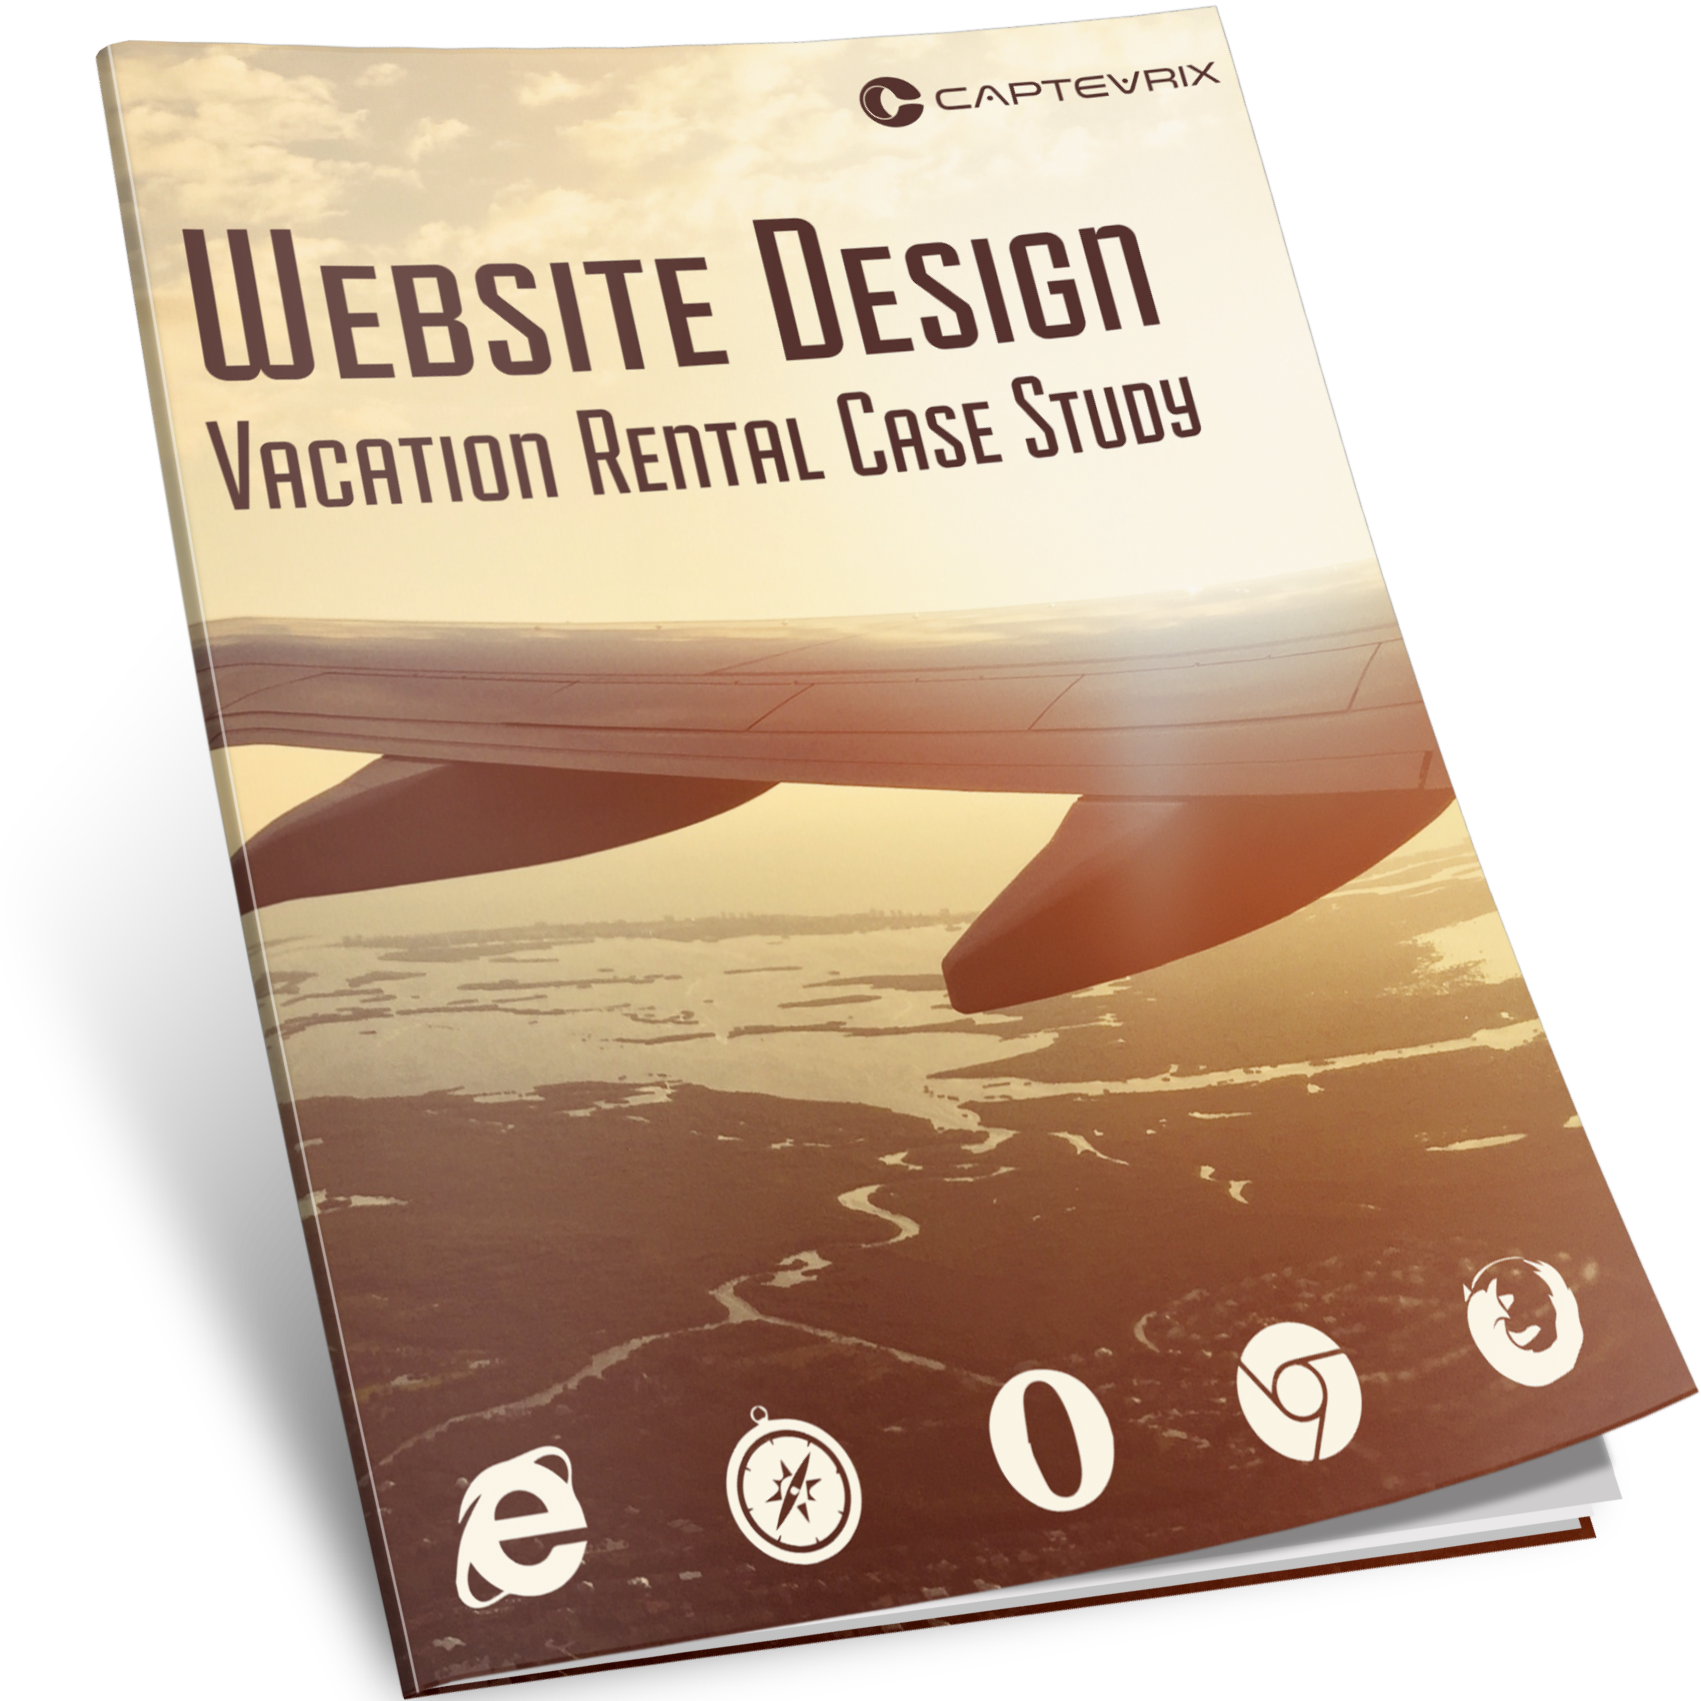 WebsiteDesignCaseStudy-CoverGraphic